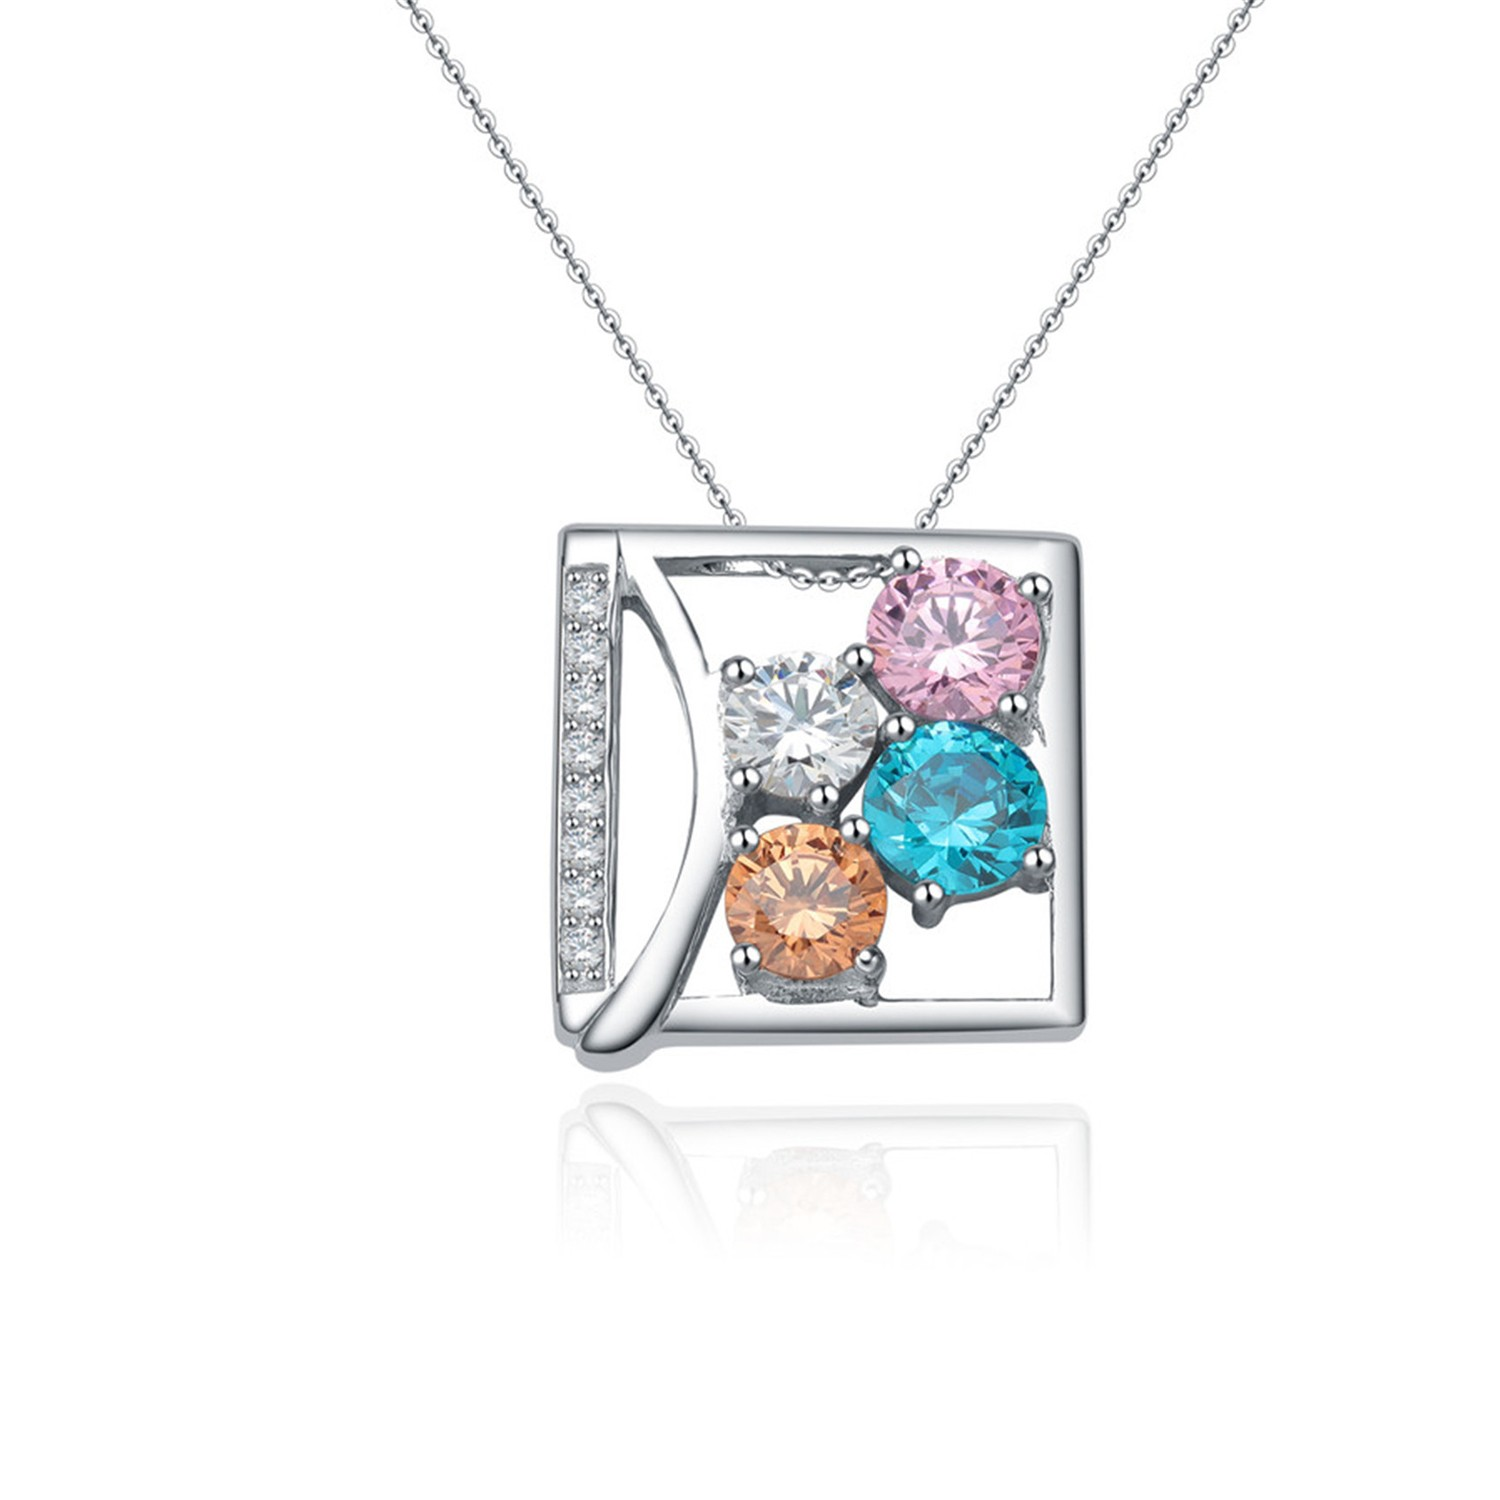 Square Colorful Cubic Zirconia Pendant Necklace 925 Sterling Silver Charming silver Necklace Jewelry